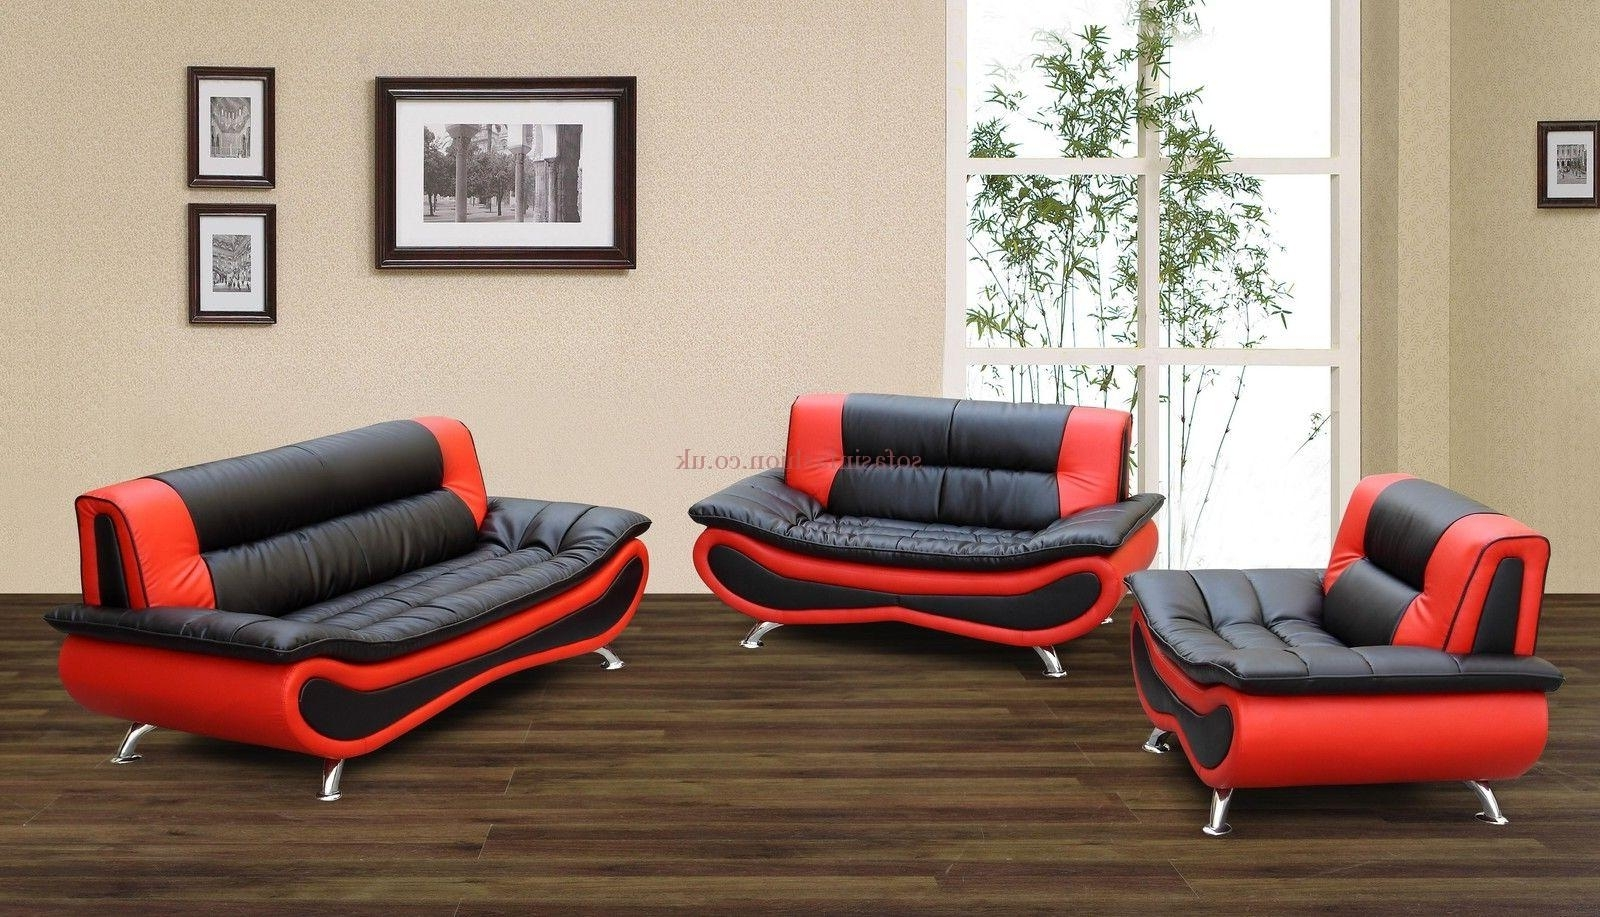 Red And Black Sofas With Regard To Most Up To Date Leather Sofa Sale Black Red Napoli Faux Sofas – Dma Homes (View 17 of 20)